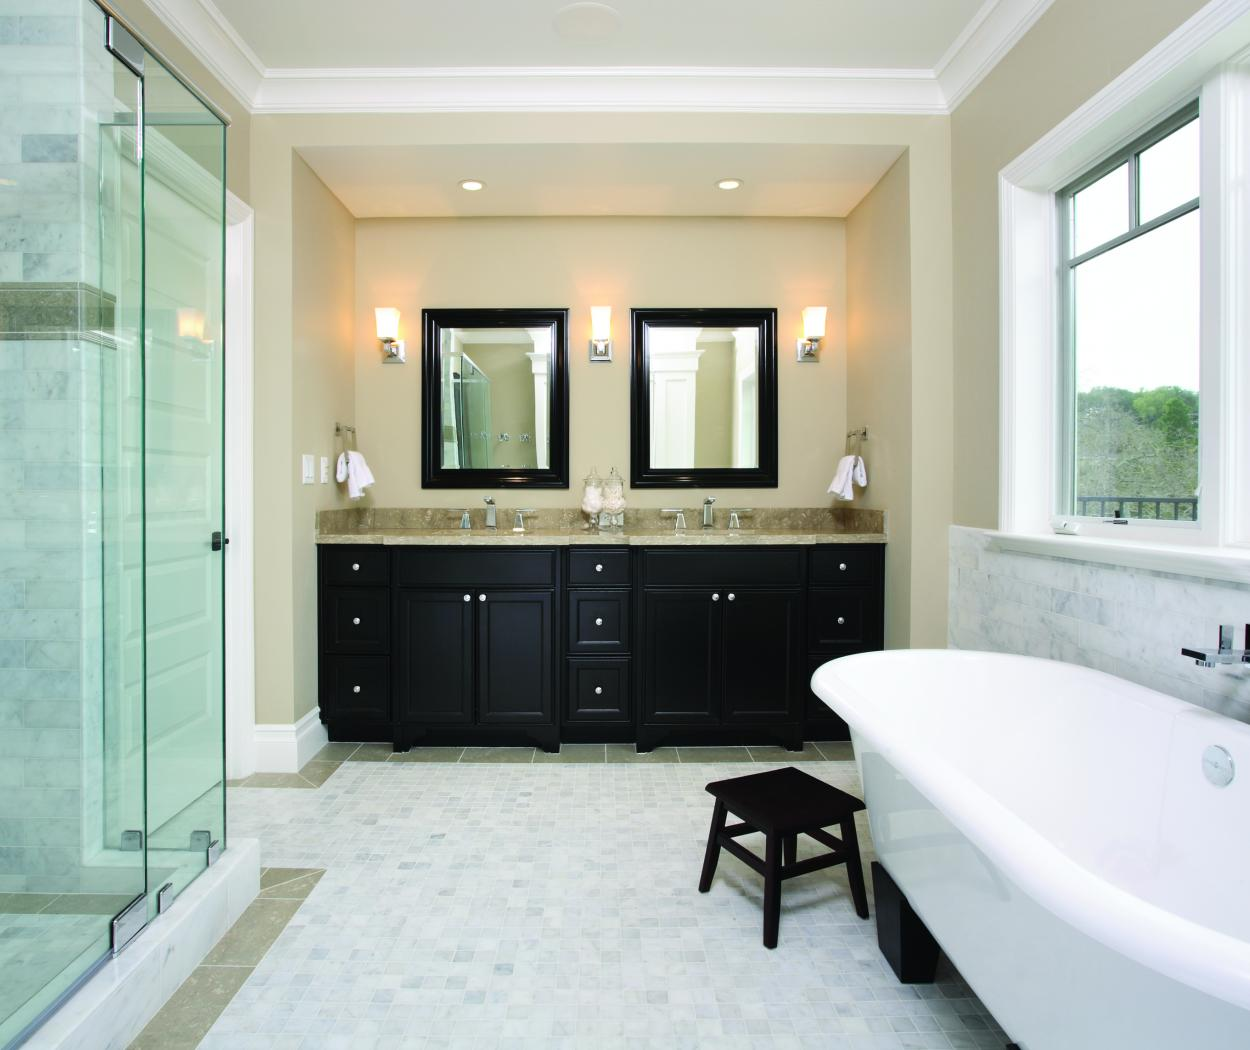 Transitional Master Bathroom Stained in Dark Espresso with a Beautiful Marble Counter Top and Polished Chrome Hardware